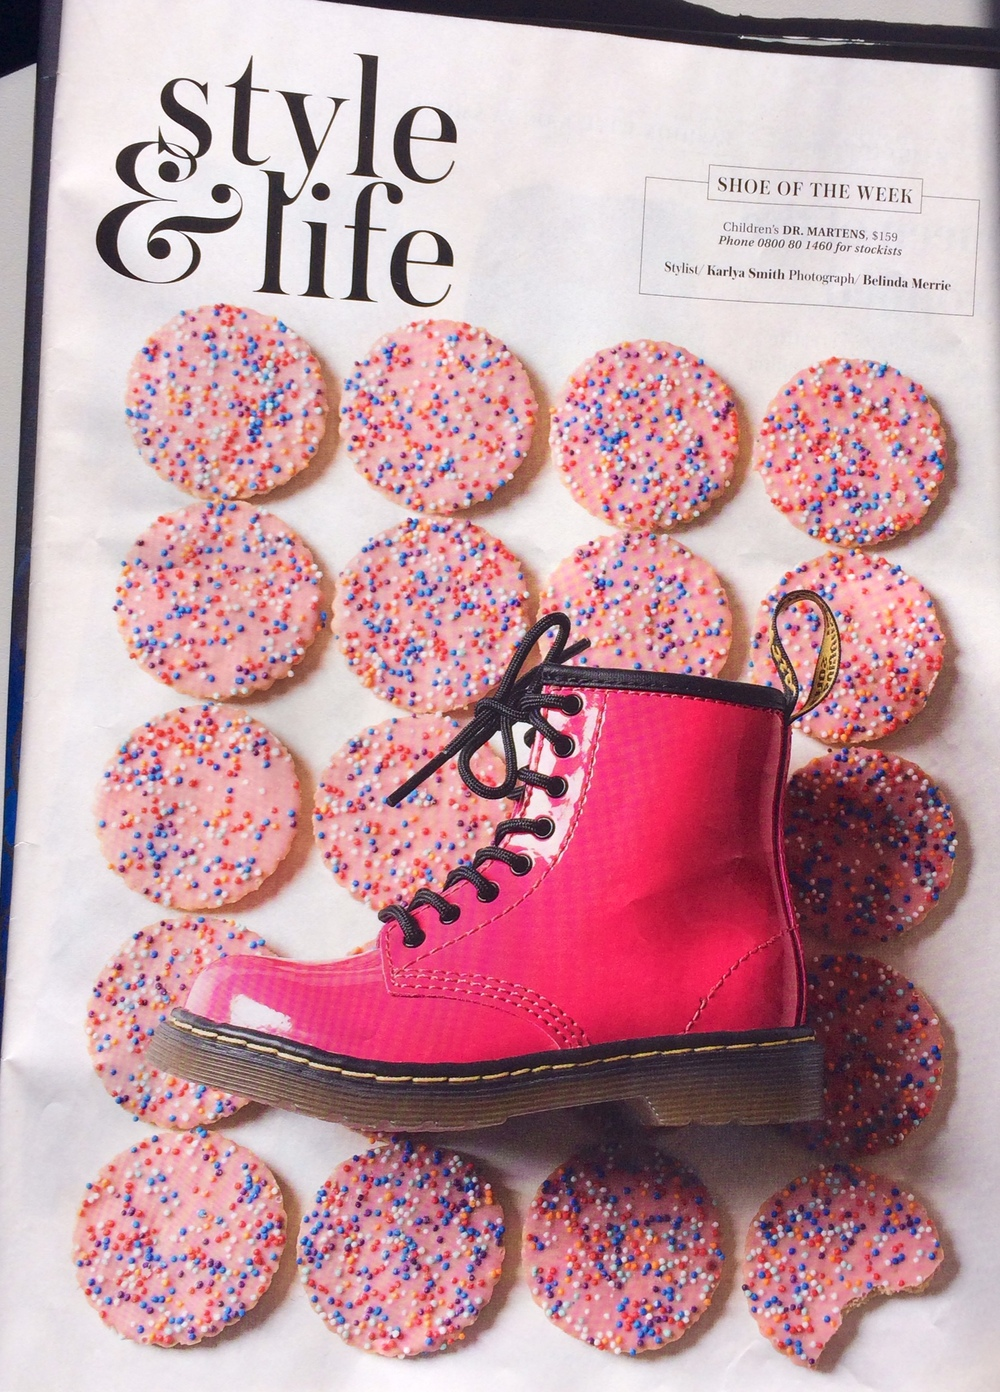 NZ HERALD PRODUCT PAGE PROMO FOR SHOE OF THE WEEK DR. MARTENS